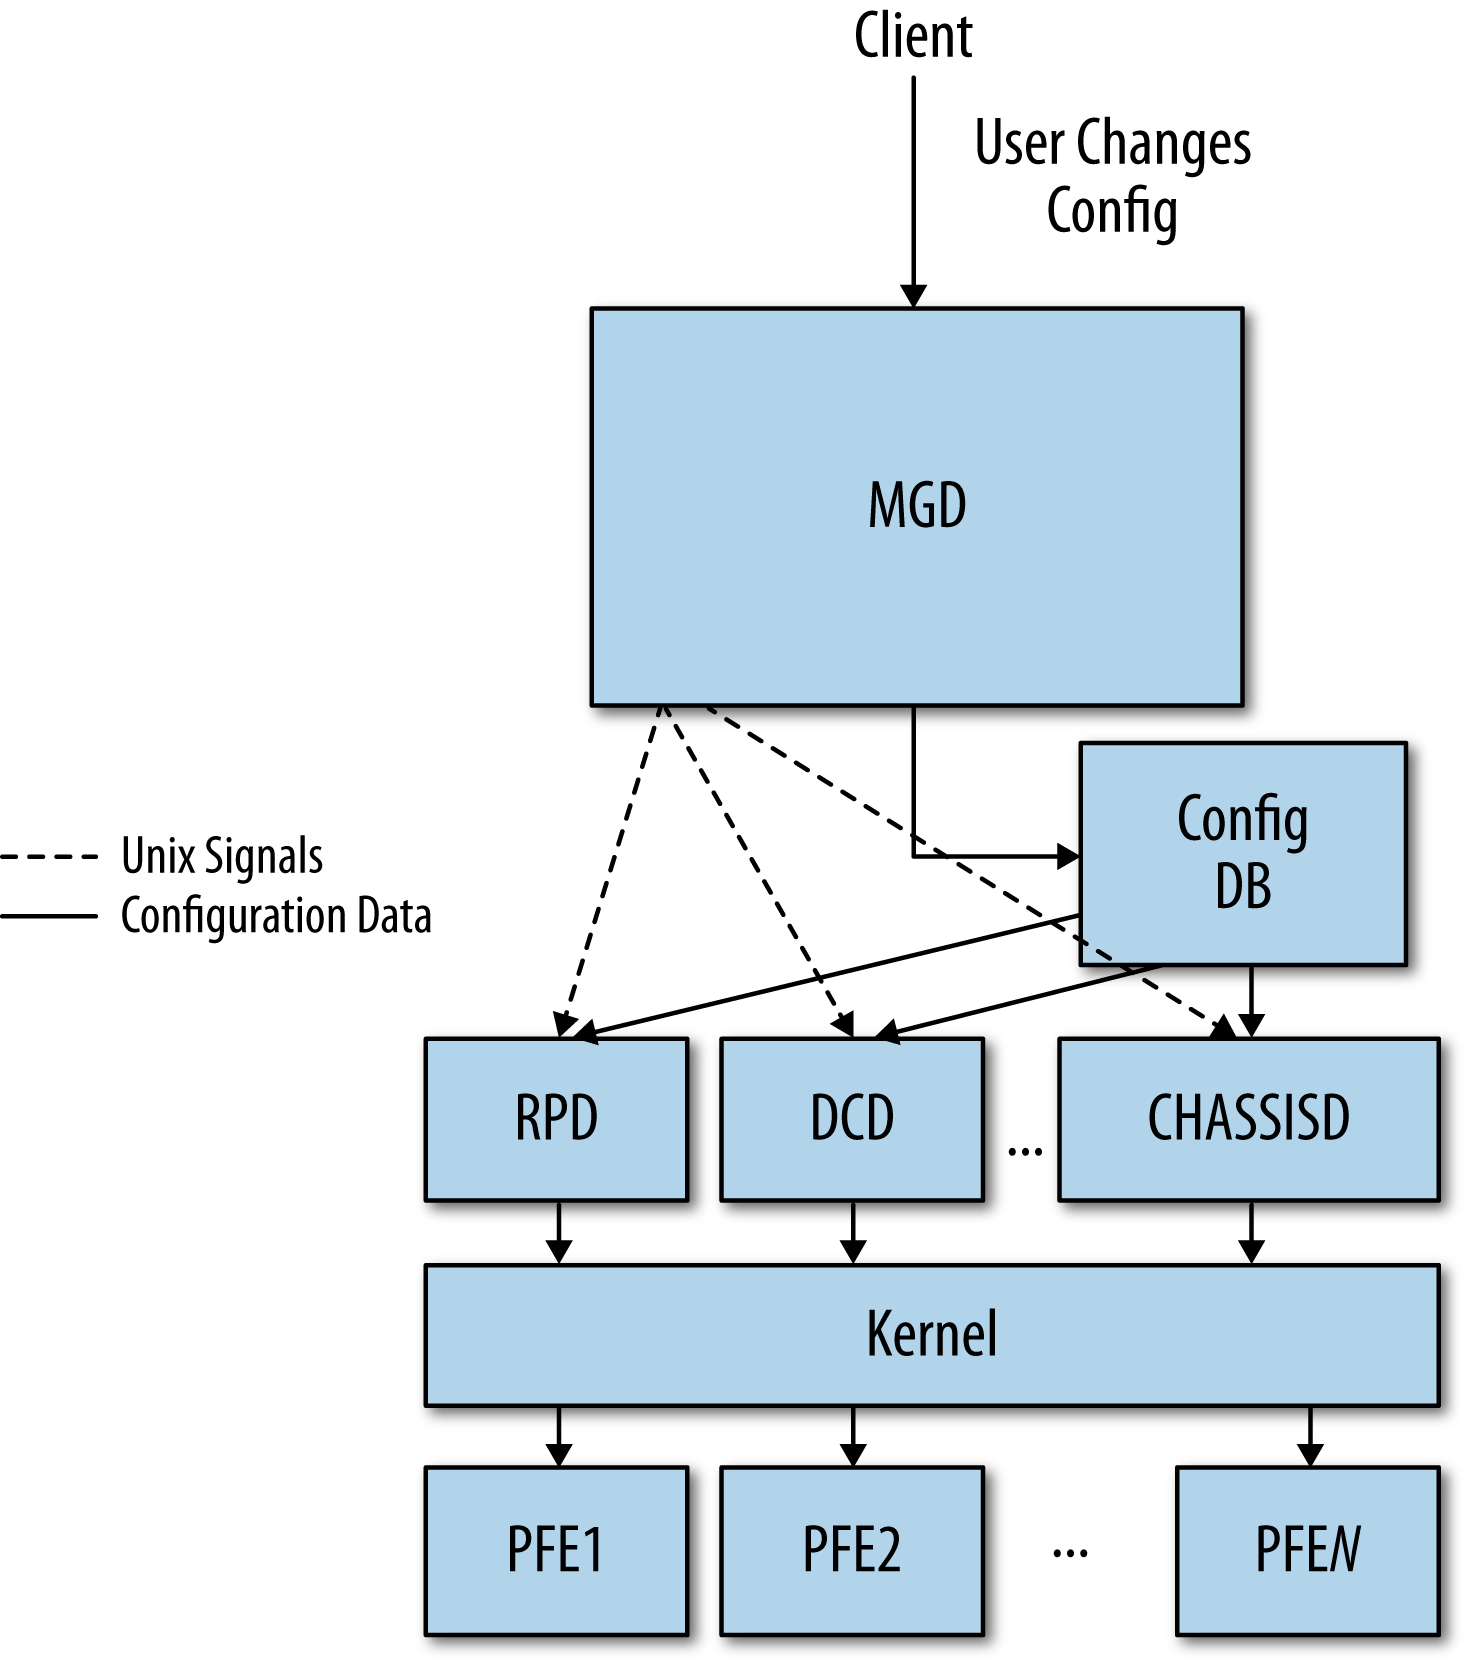 Configuring the Junos system's management daemon (MGD) - O'Reilly Media